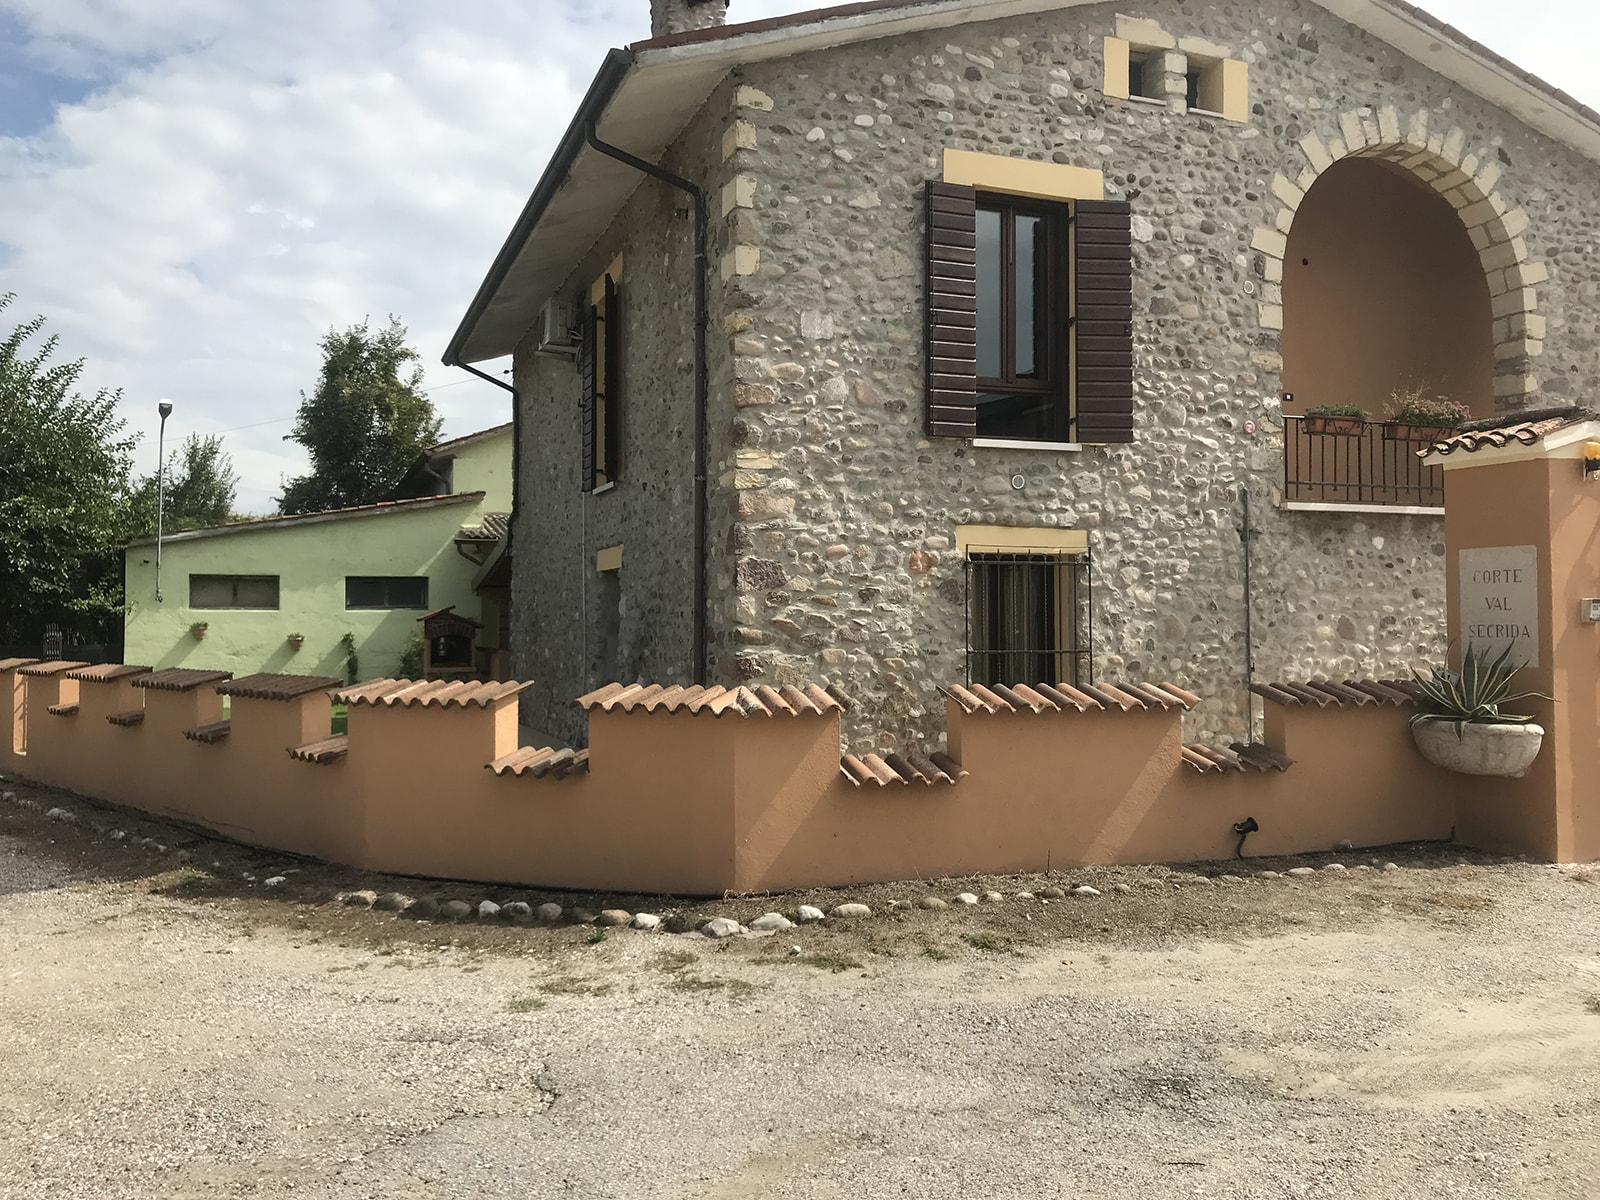 Villa - Holiday appartments in Borghetto sul Mincio, Verona